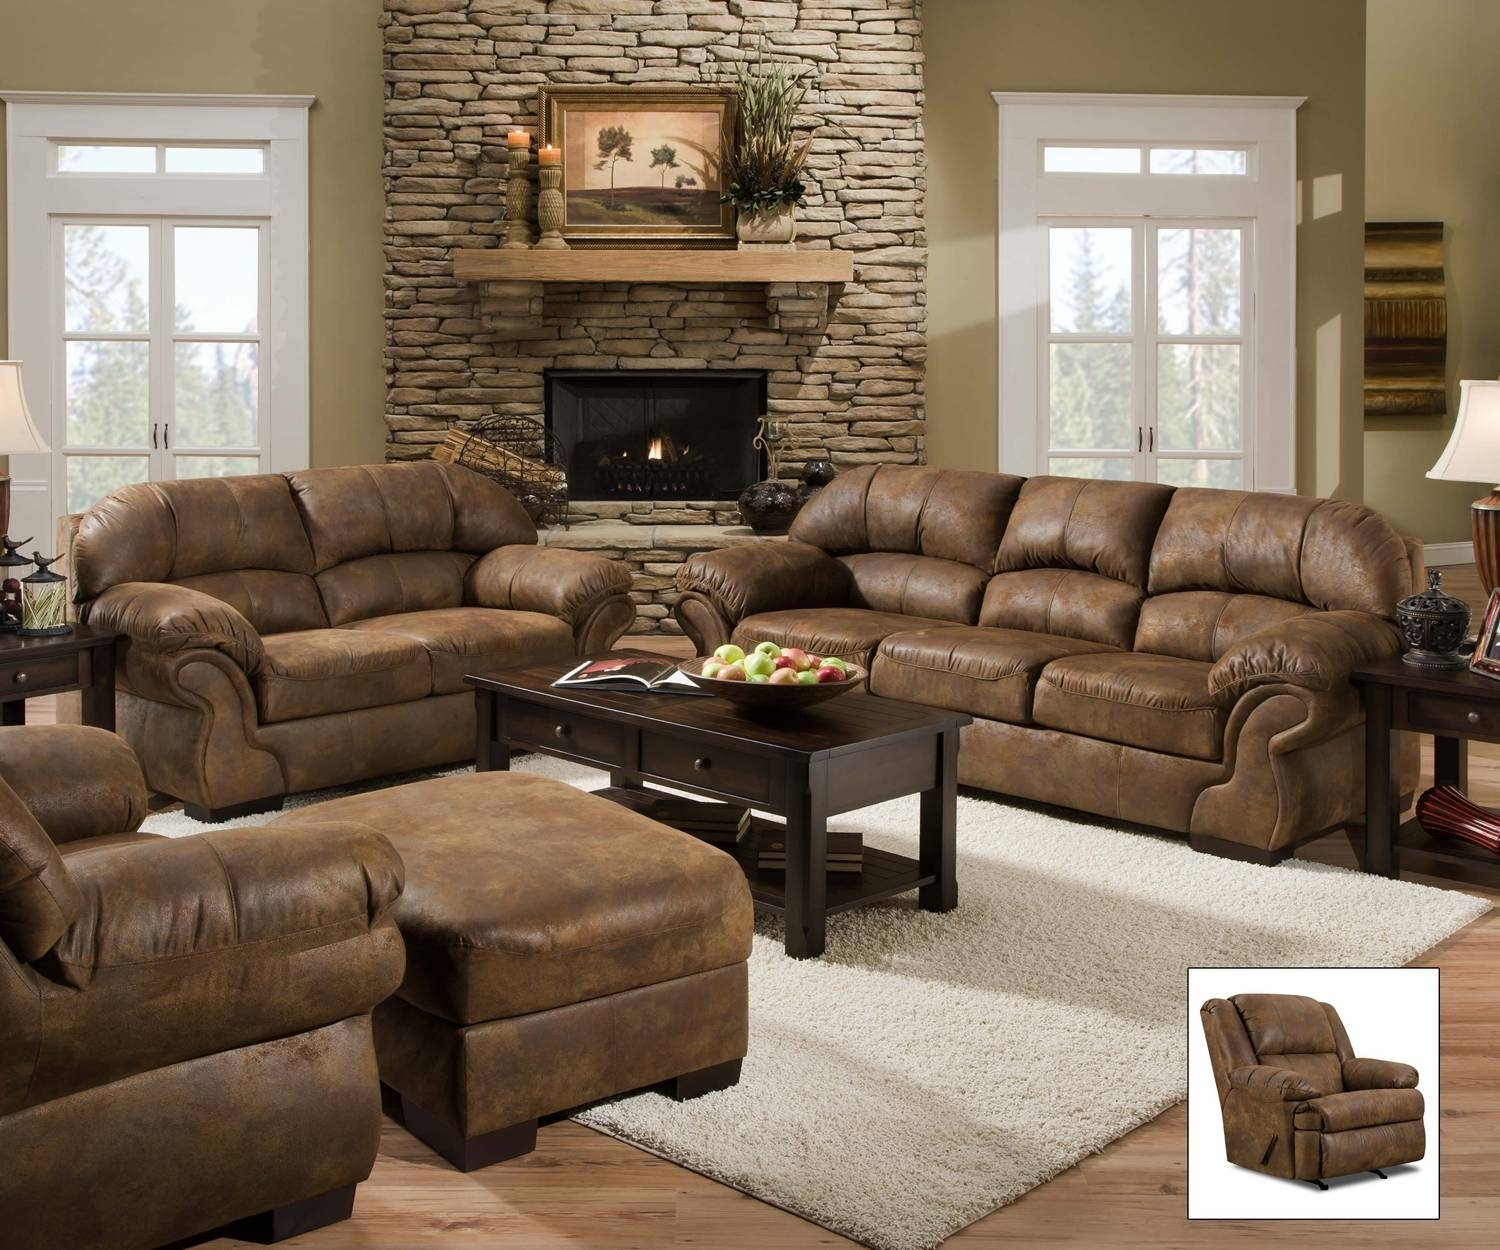 Pinto Tobacco Faux Leather Sofasimmons with regard to Simmons Sectional Sofas (Image 7 of 30)